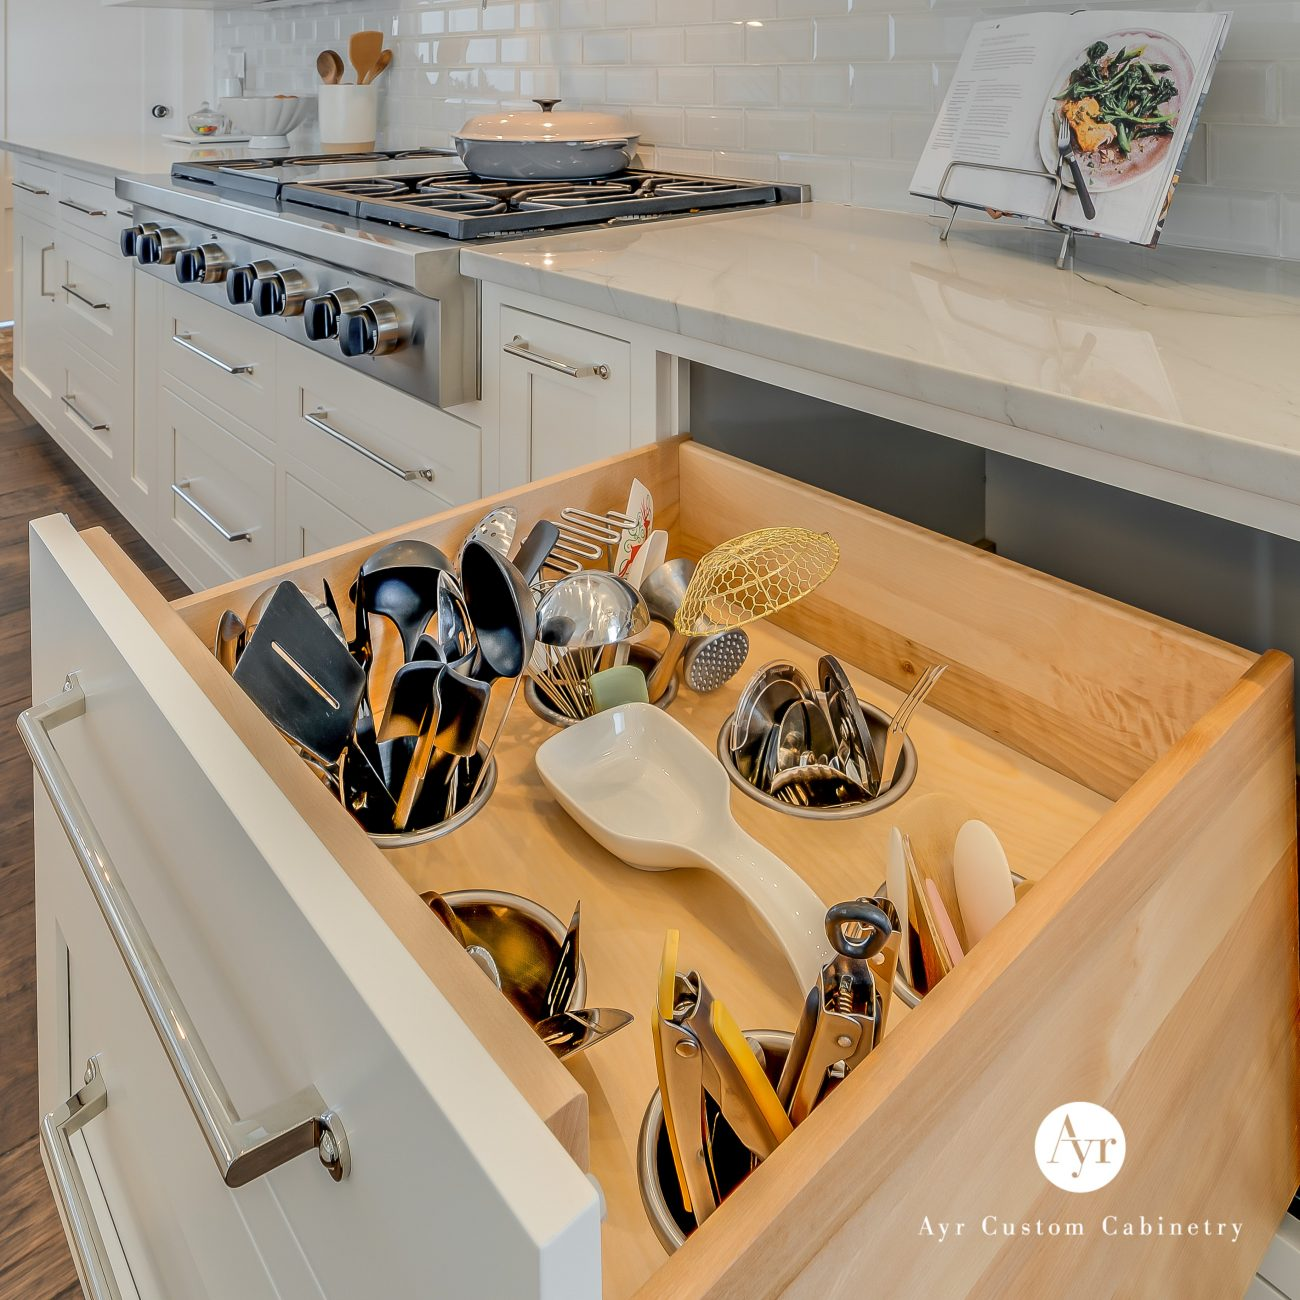 custom kitchen cabinets staley project utensil drawer